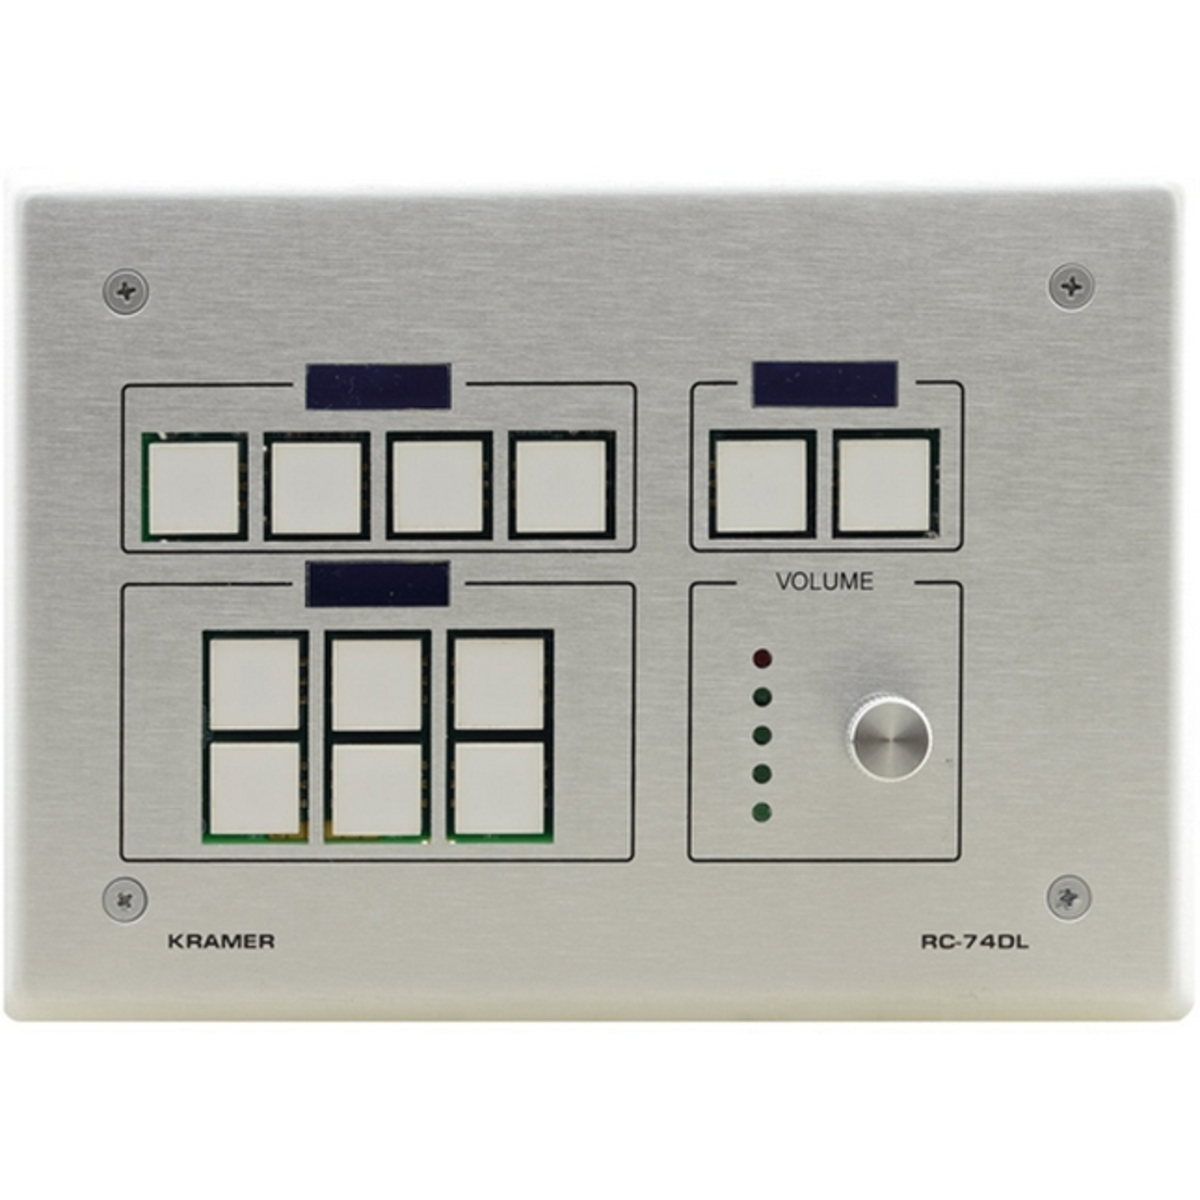 Buy Kramer RC-74DL: 12-Button Master Room Controller with